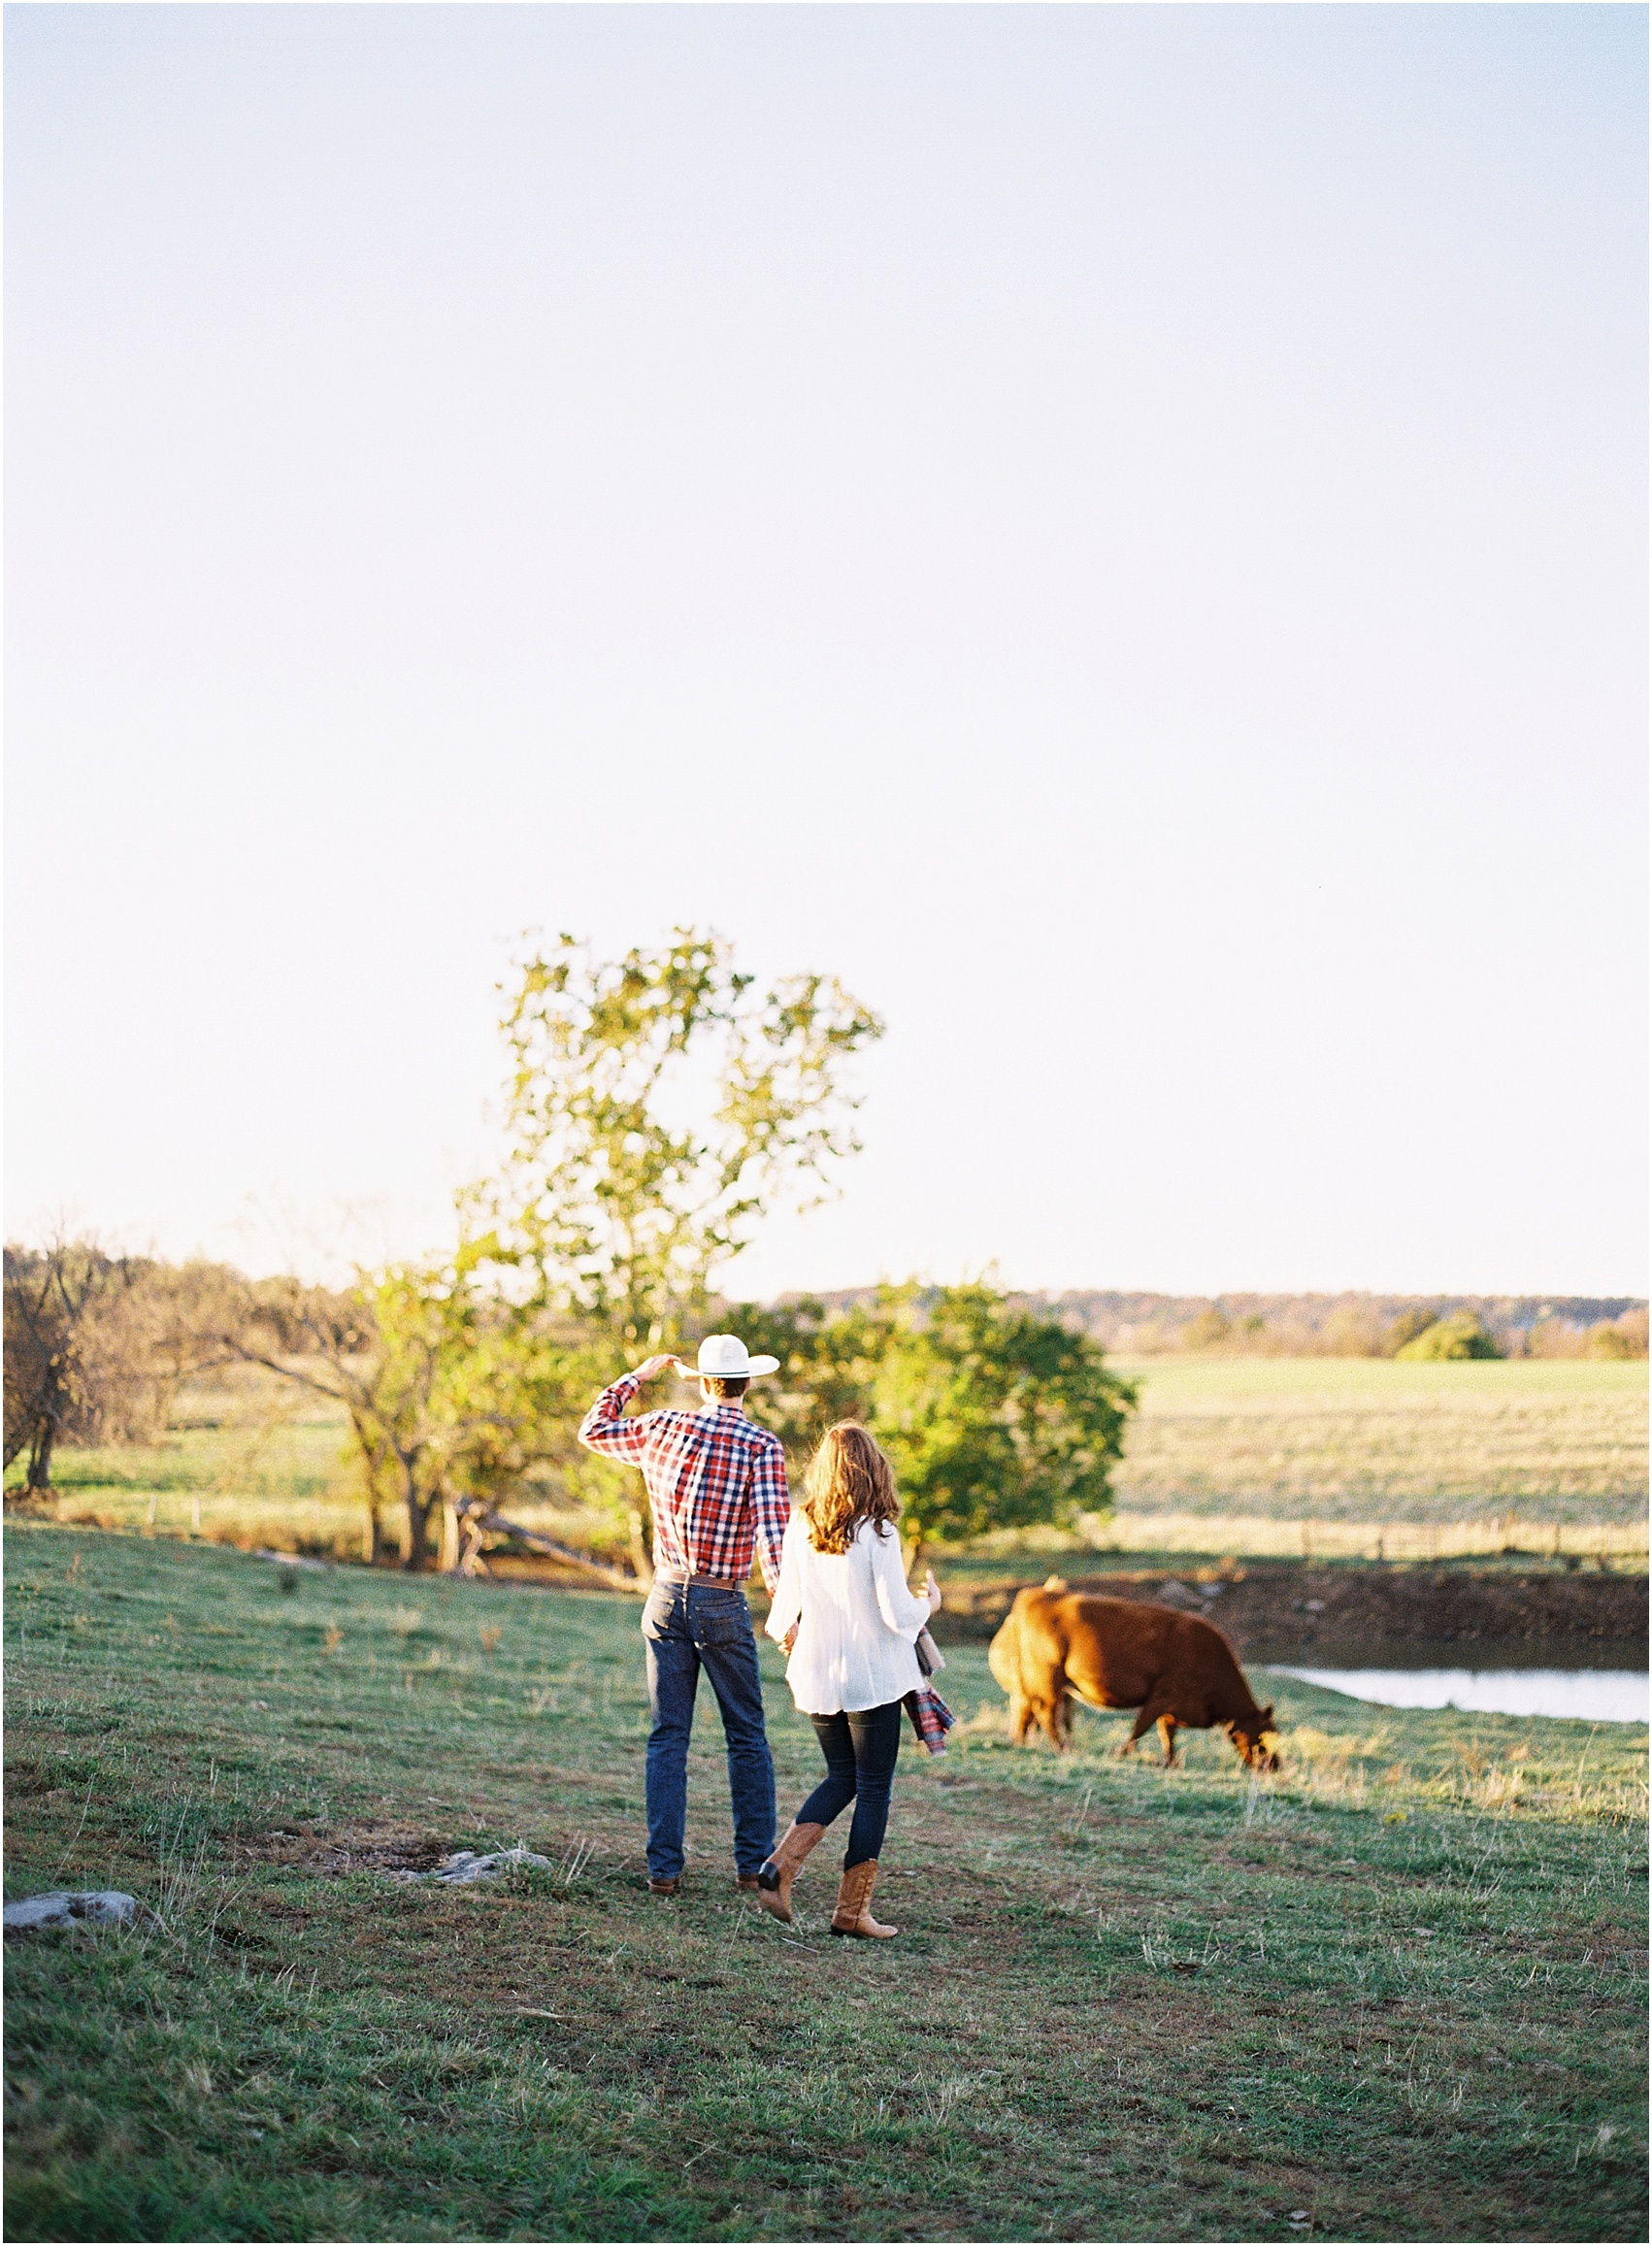 Bolivar MO Engagement Session - Jordan Brittley Photography (www.jordanbrittley.com)